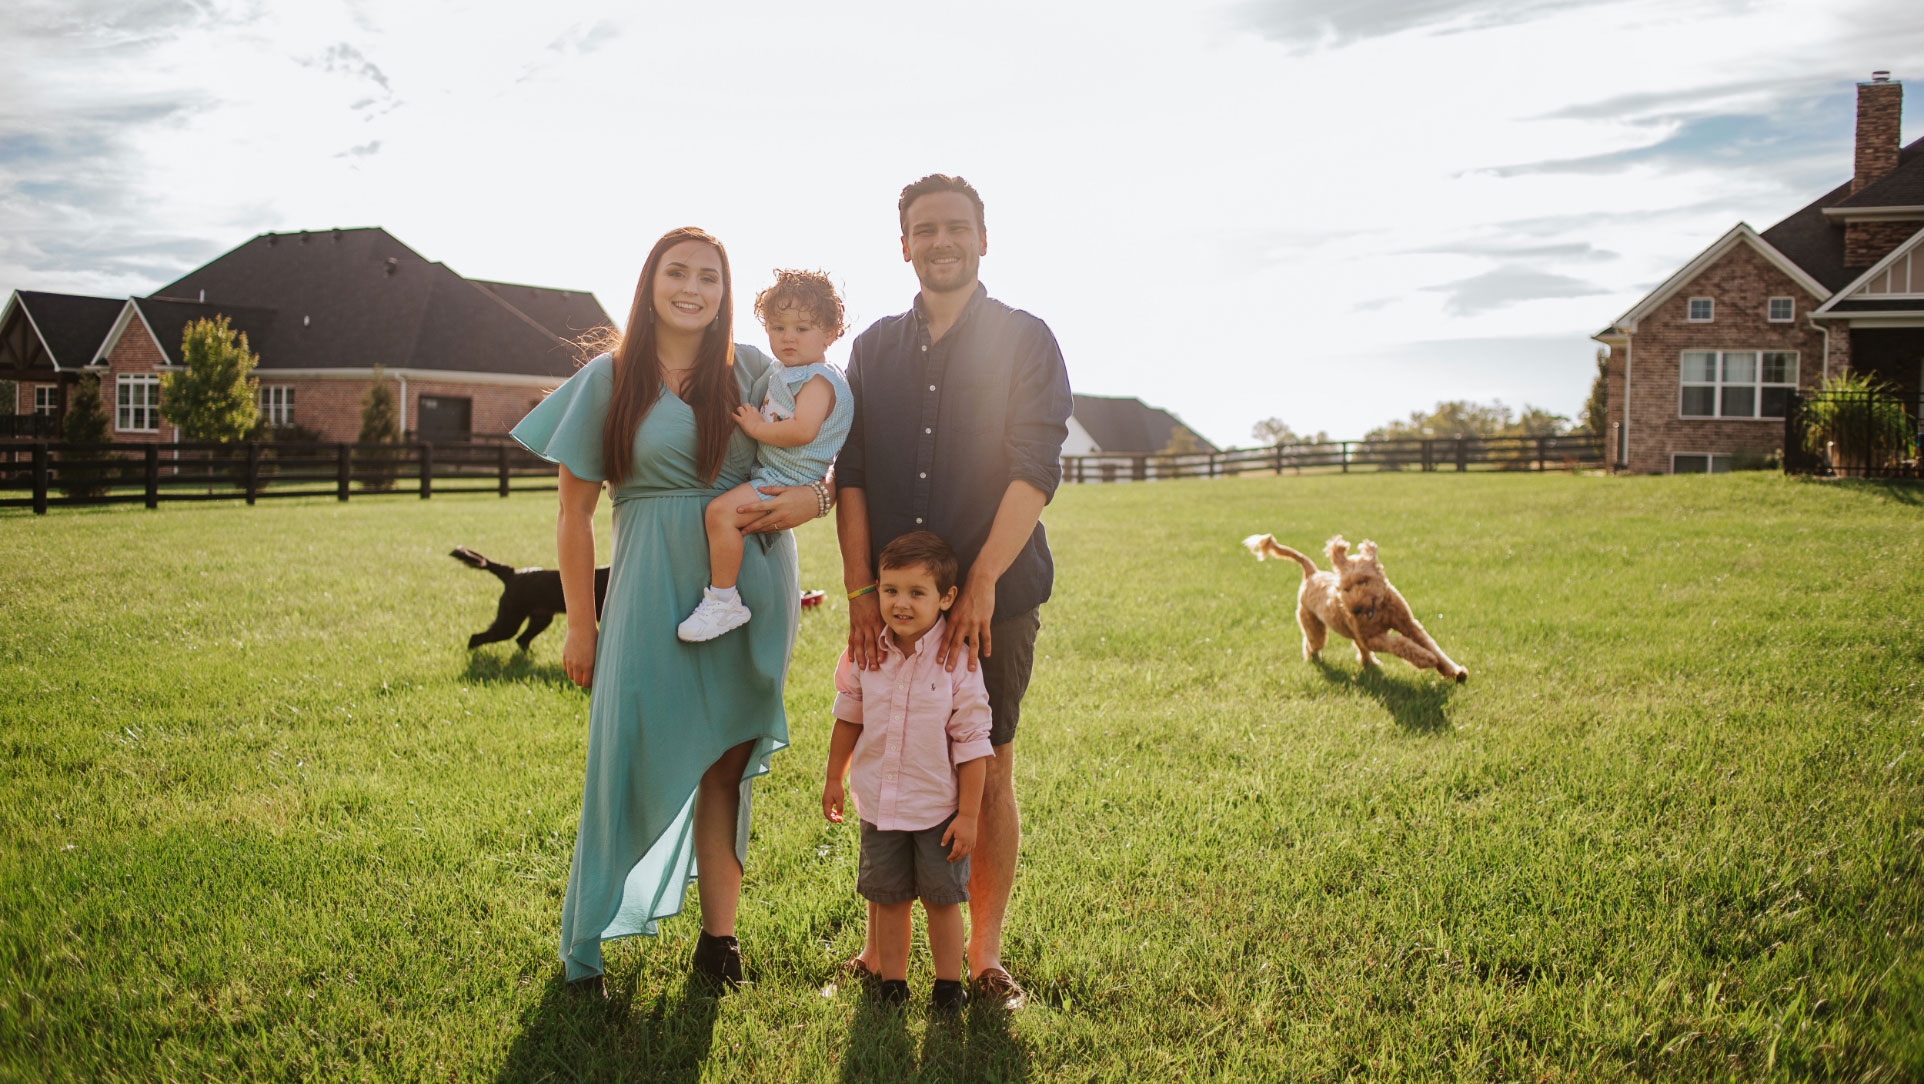 Charlie's family—including his mom, Cassidy, wearing a teal dress, his dad, Alex, wearing shorts and a navy button-down, and his brother, Baylor, wearing shorts and a pink button-down—poses for a family photo in front of their home as their two dogs run around them.